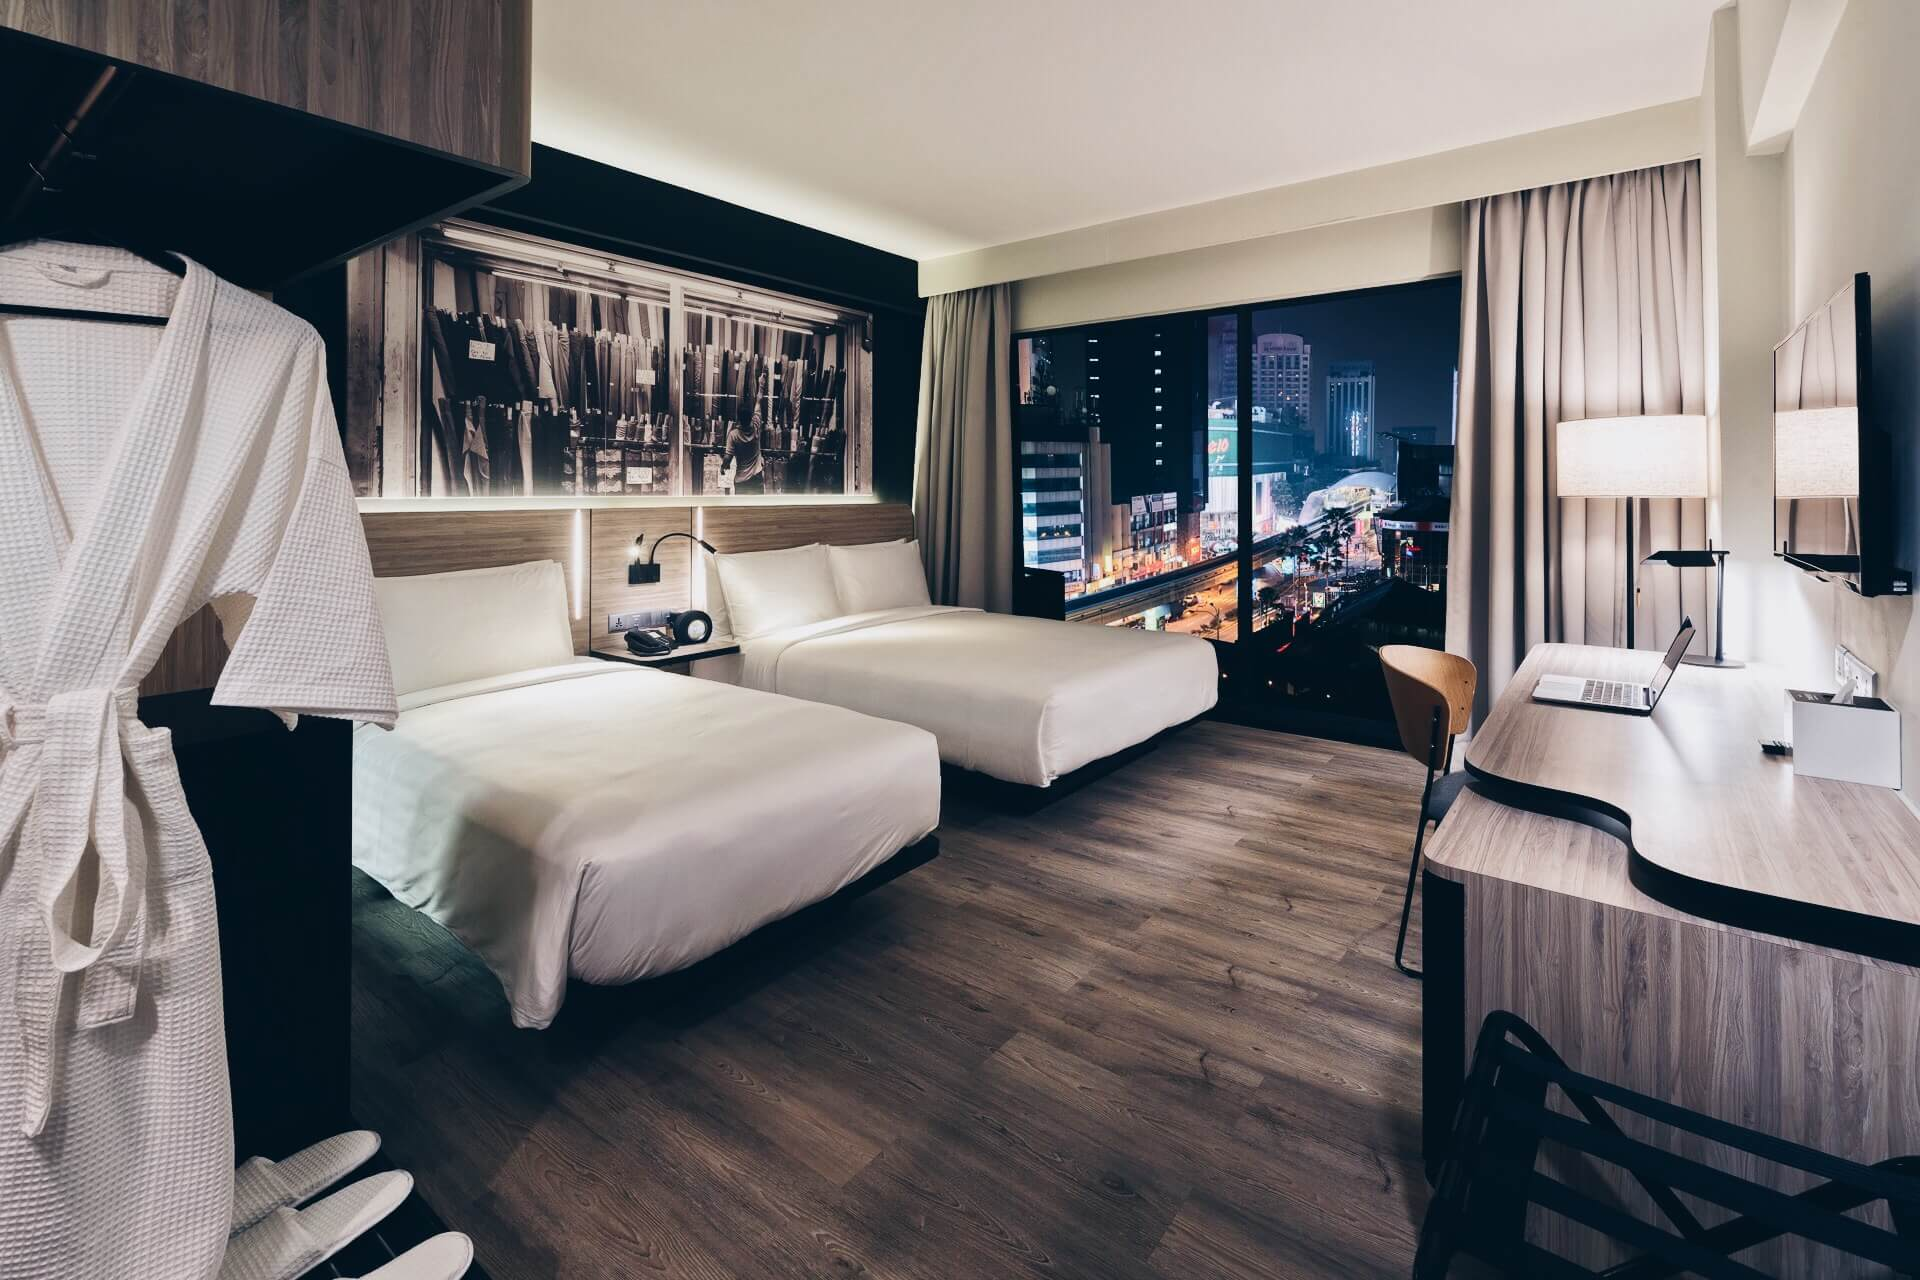 Deluxe Triple room at KL Journal Hotel with night city views